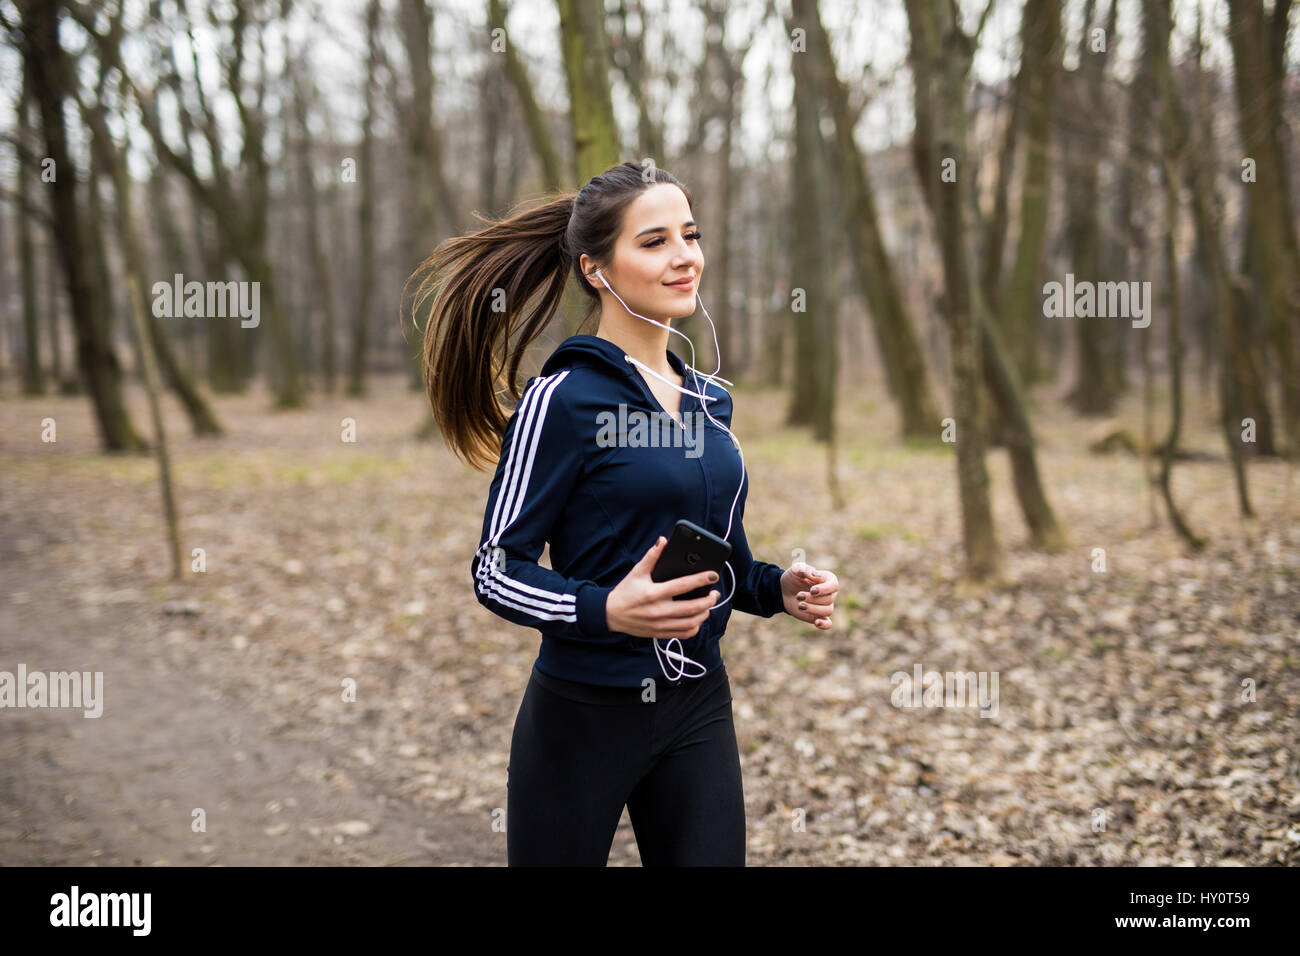 Young woman with headphones jogging in park and looking to mobile phone - Stock Image